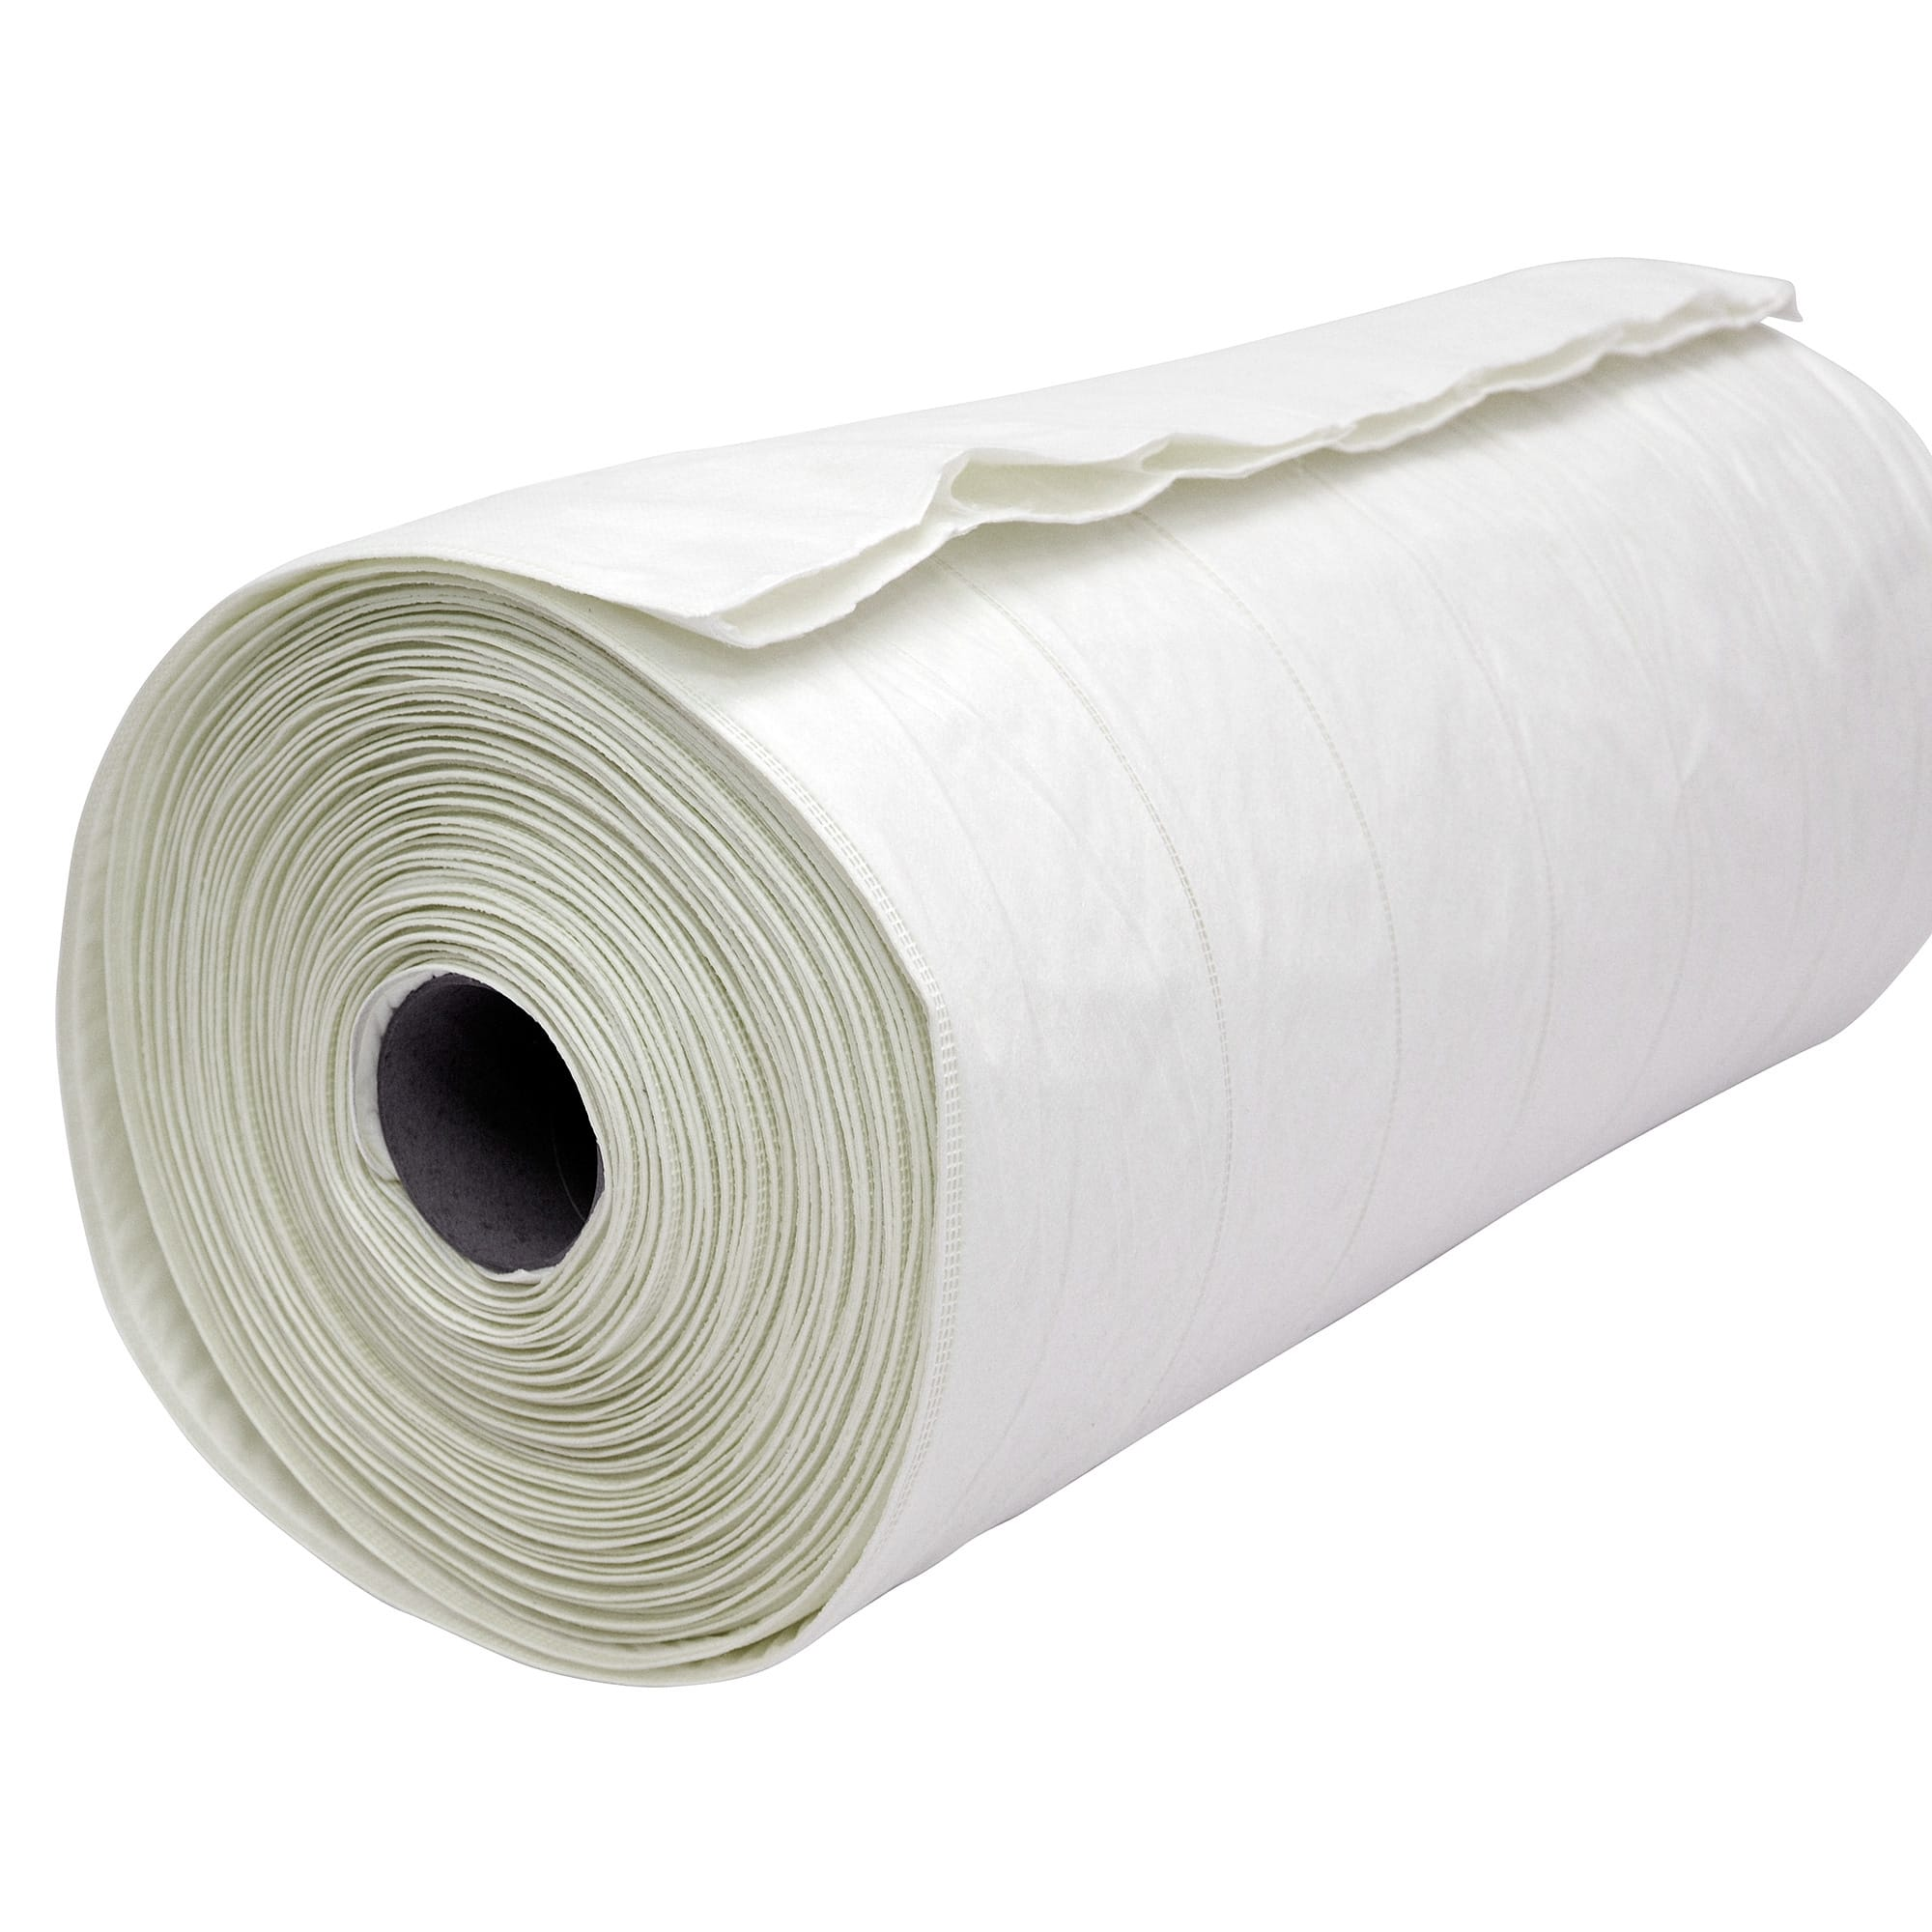 Welded Air Filter Media Rolls